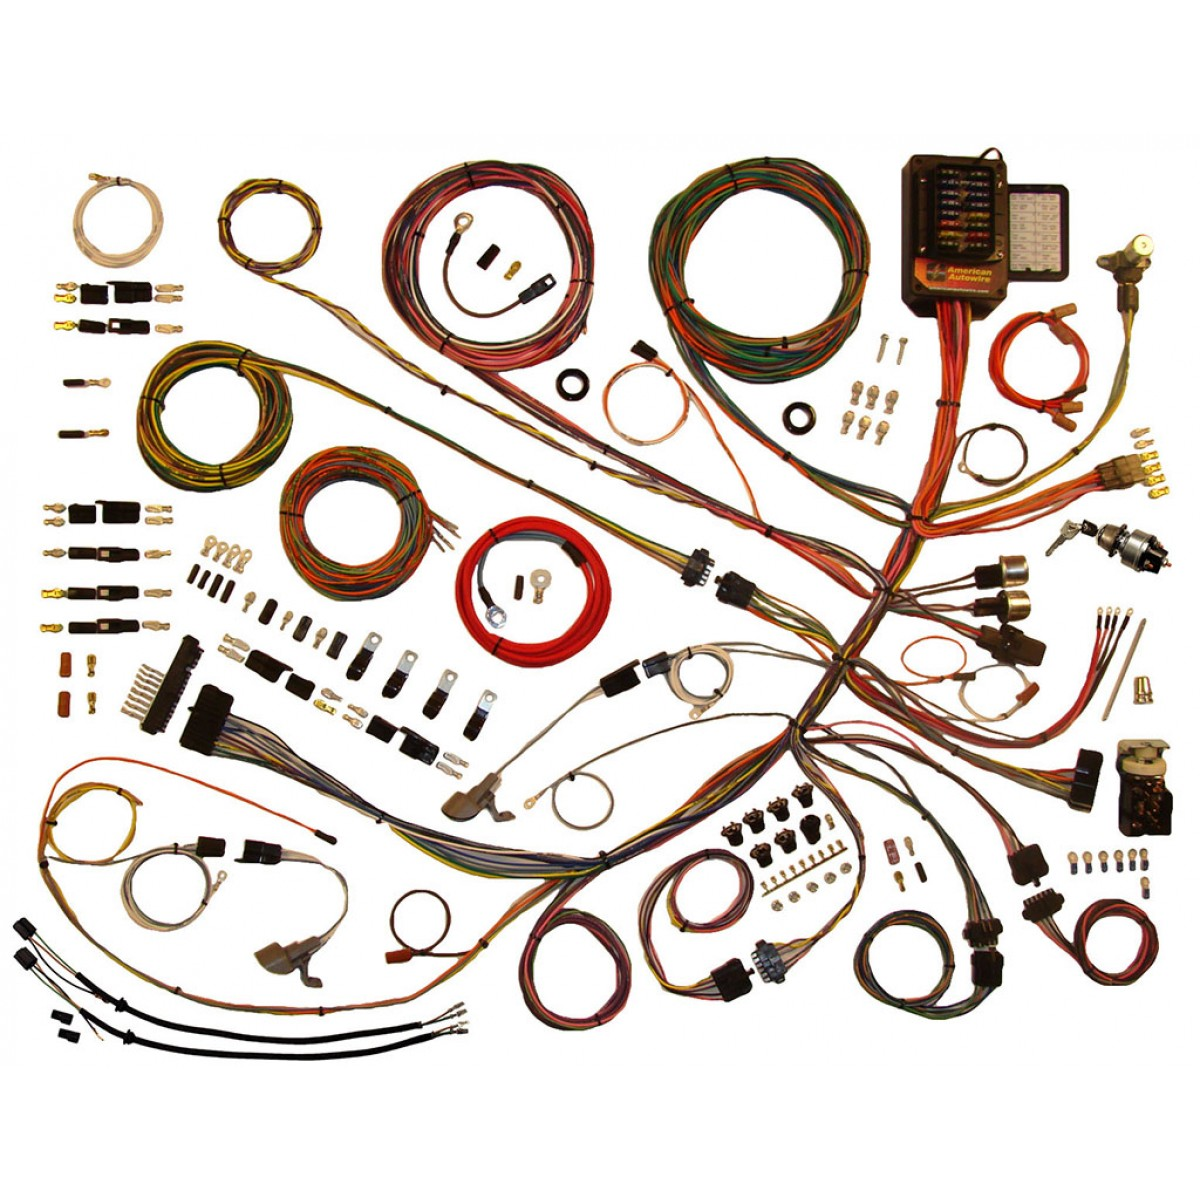 complete wiring harness kit 1953 1956 ford f100 part 510303 ford truck wiring harness f100 ford f100 wiring harness electrical, dash wires, ford f100 1966 ford f100 wiring harness at edmiracle.co